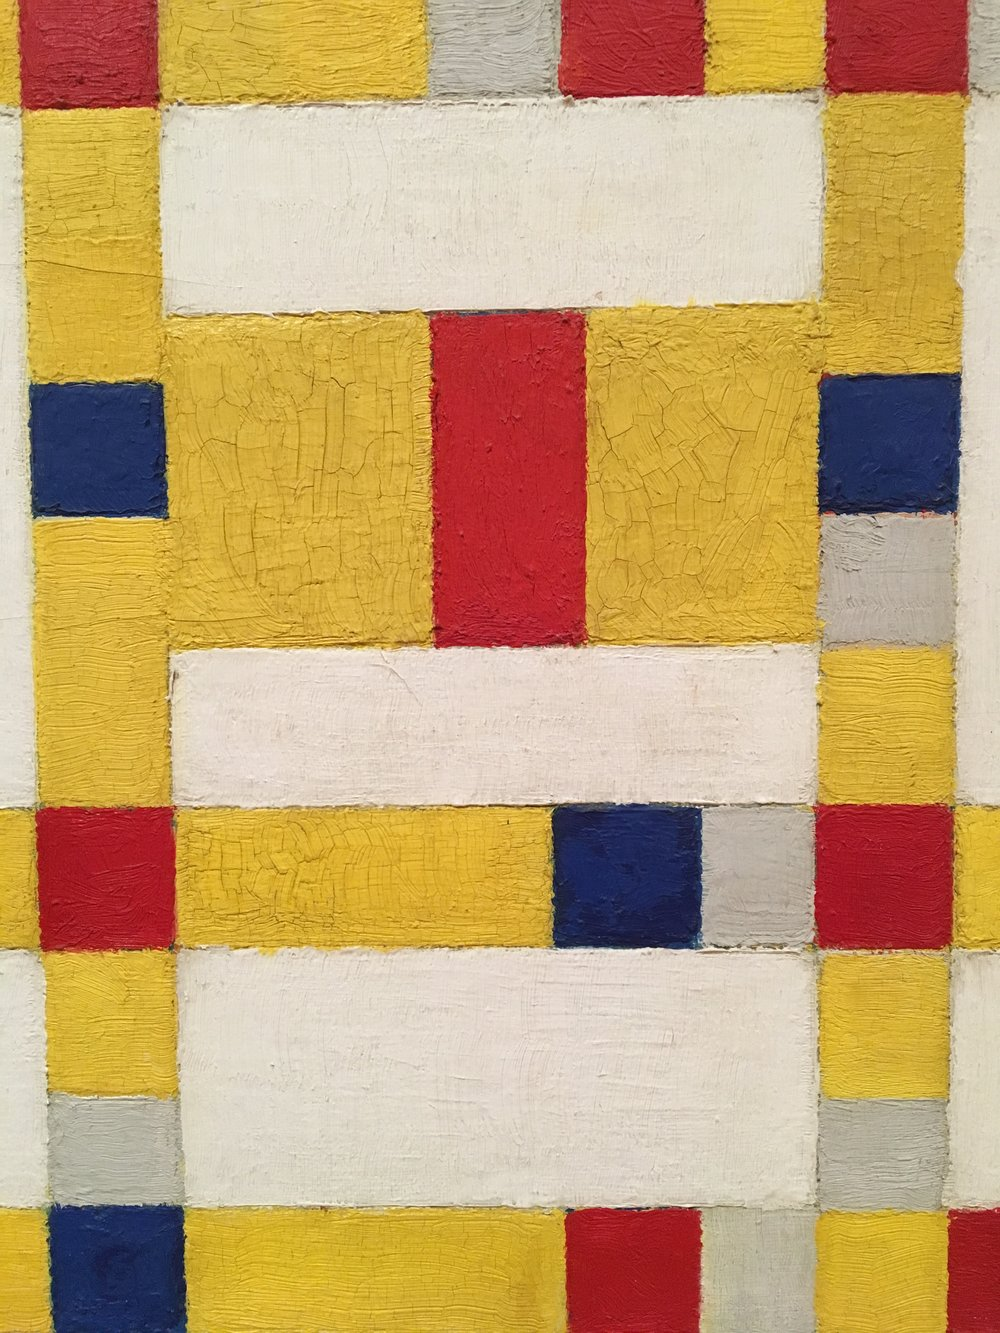 Piet Mondrian - The Netherlands-based De Stijl movement embraced an abstract, pared-down aesthetic centered in basic visual elements such as geometric forms and primary colors. artstory.org